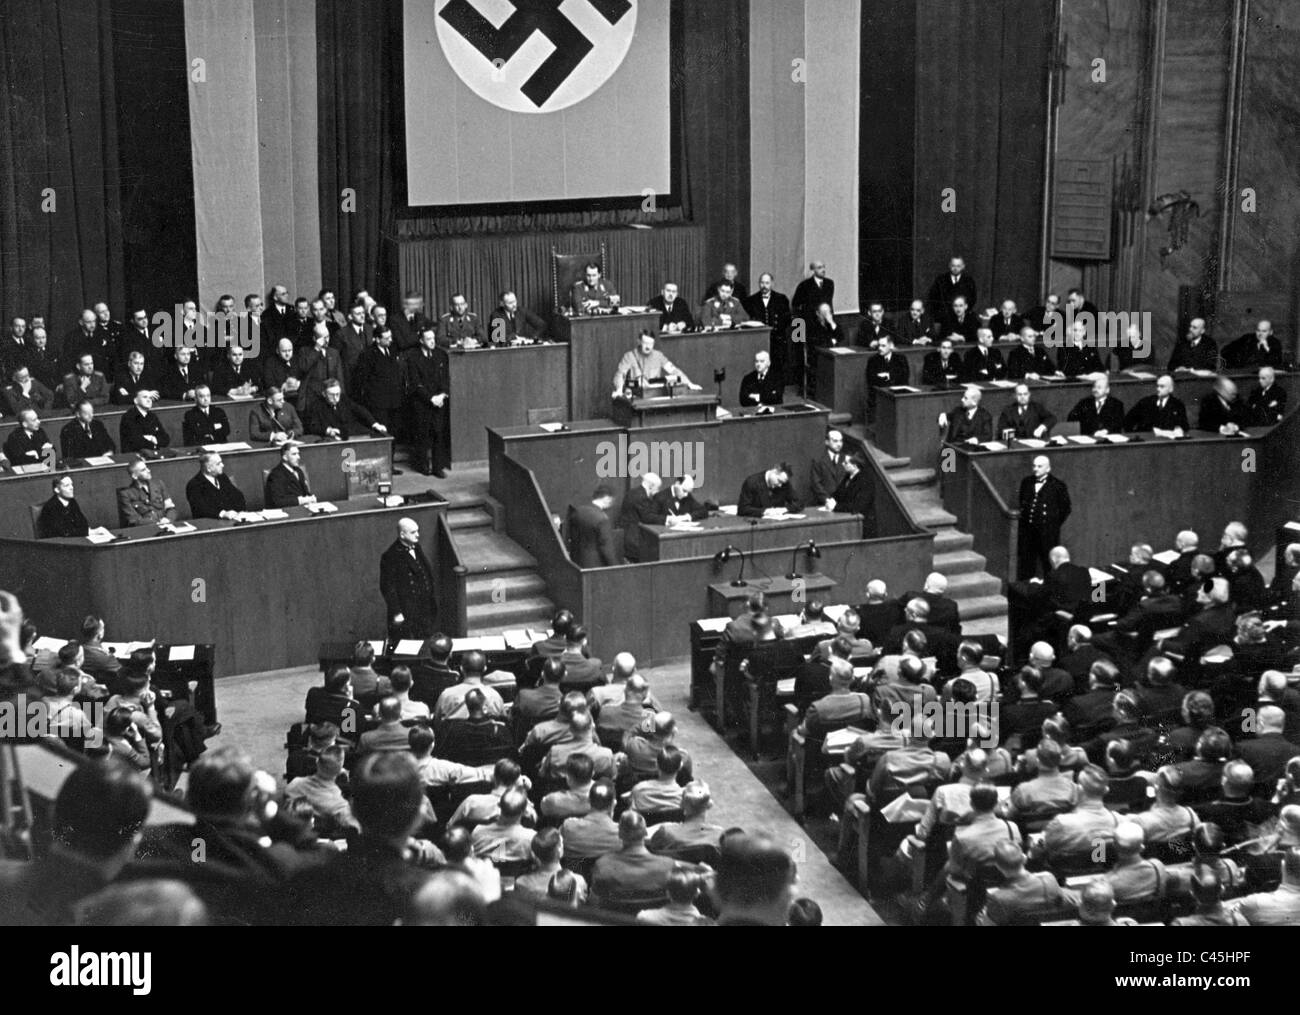 Adolf Hitler during the Reichstag session on 23/03/1933 - Stock Image